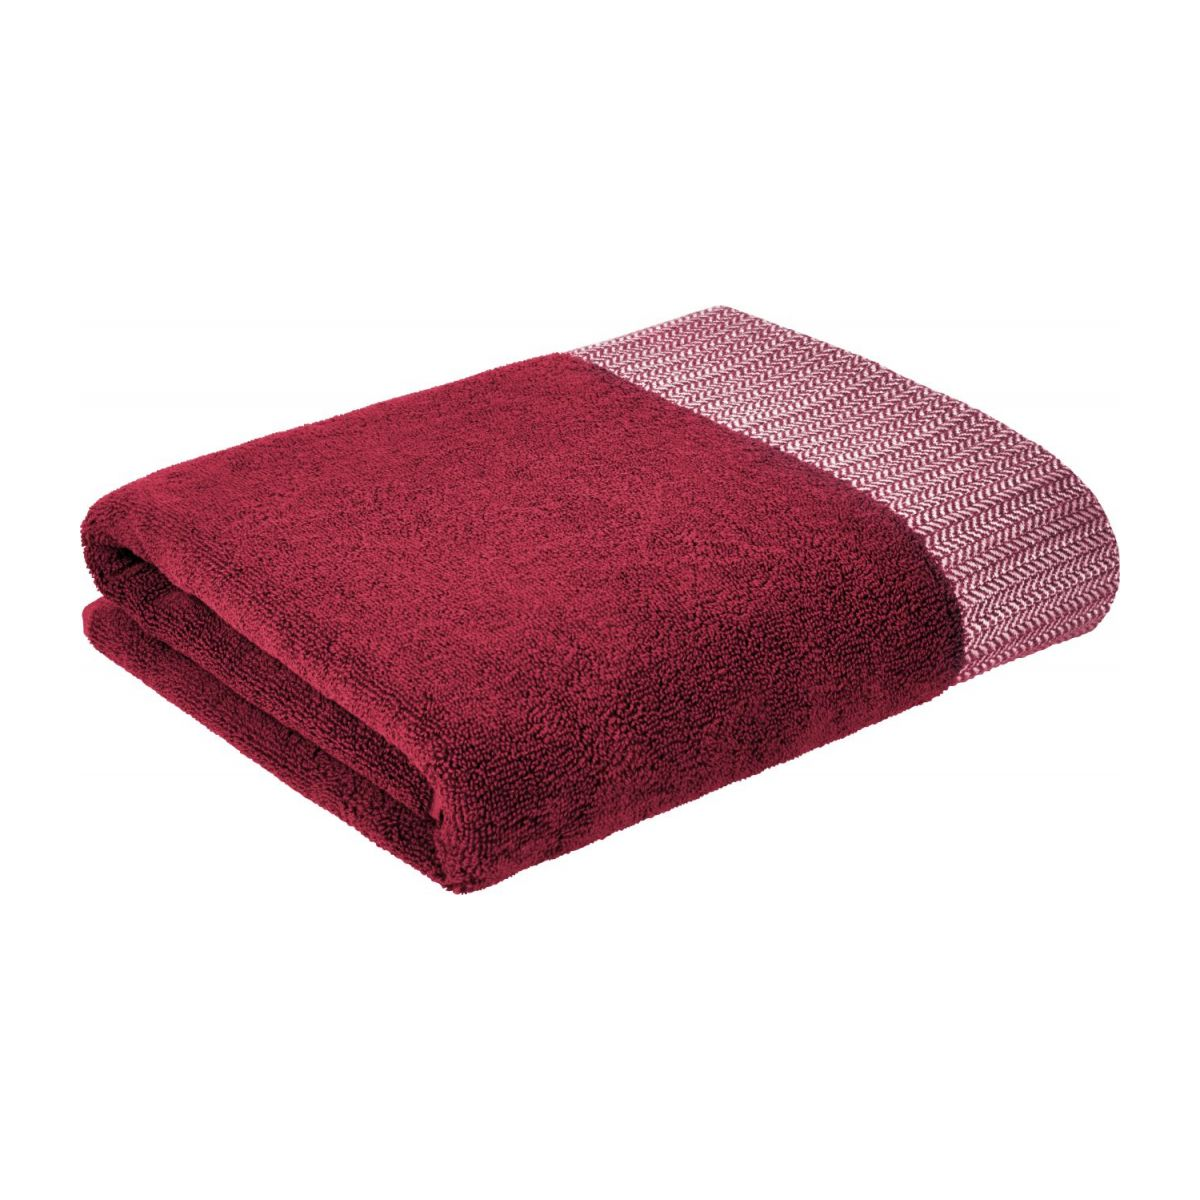 Bath towel made of cotton 50x100, red n°1